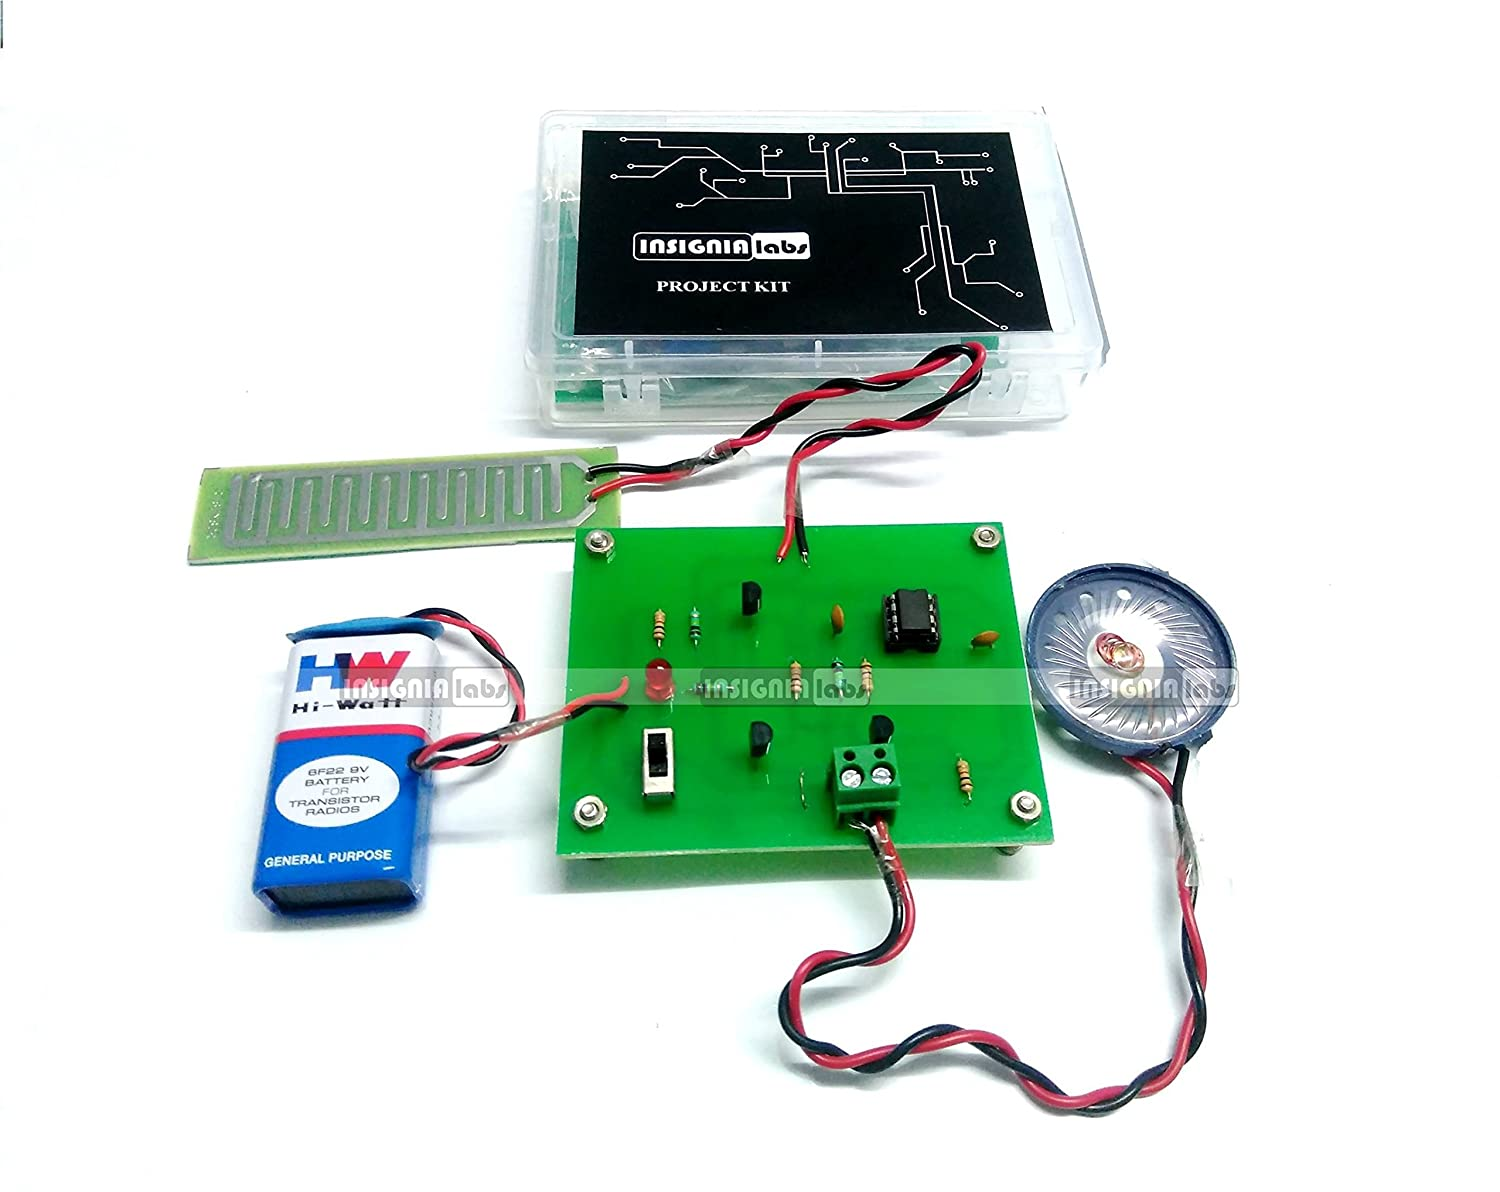 Insignia Labs Rain Sensor Detector Alarm Kit Project Diy How To Build A 555 Timer Based Motorcycle Electronic School College Industrial Scientific